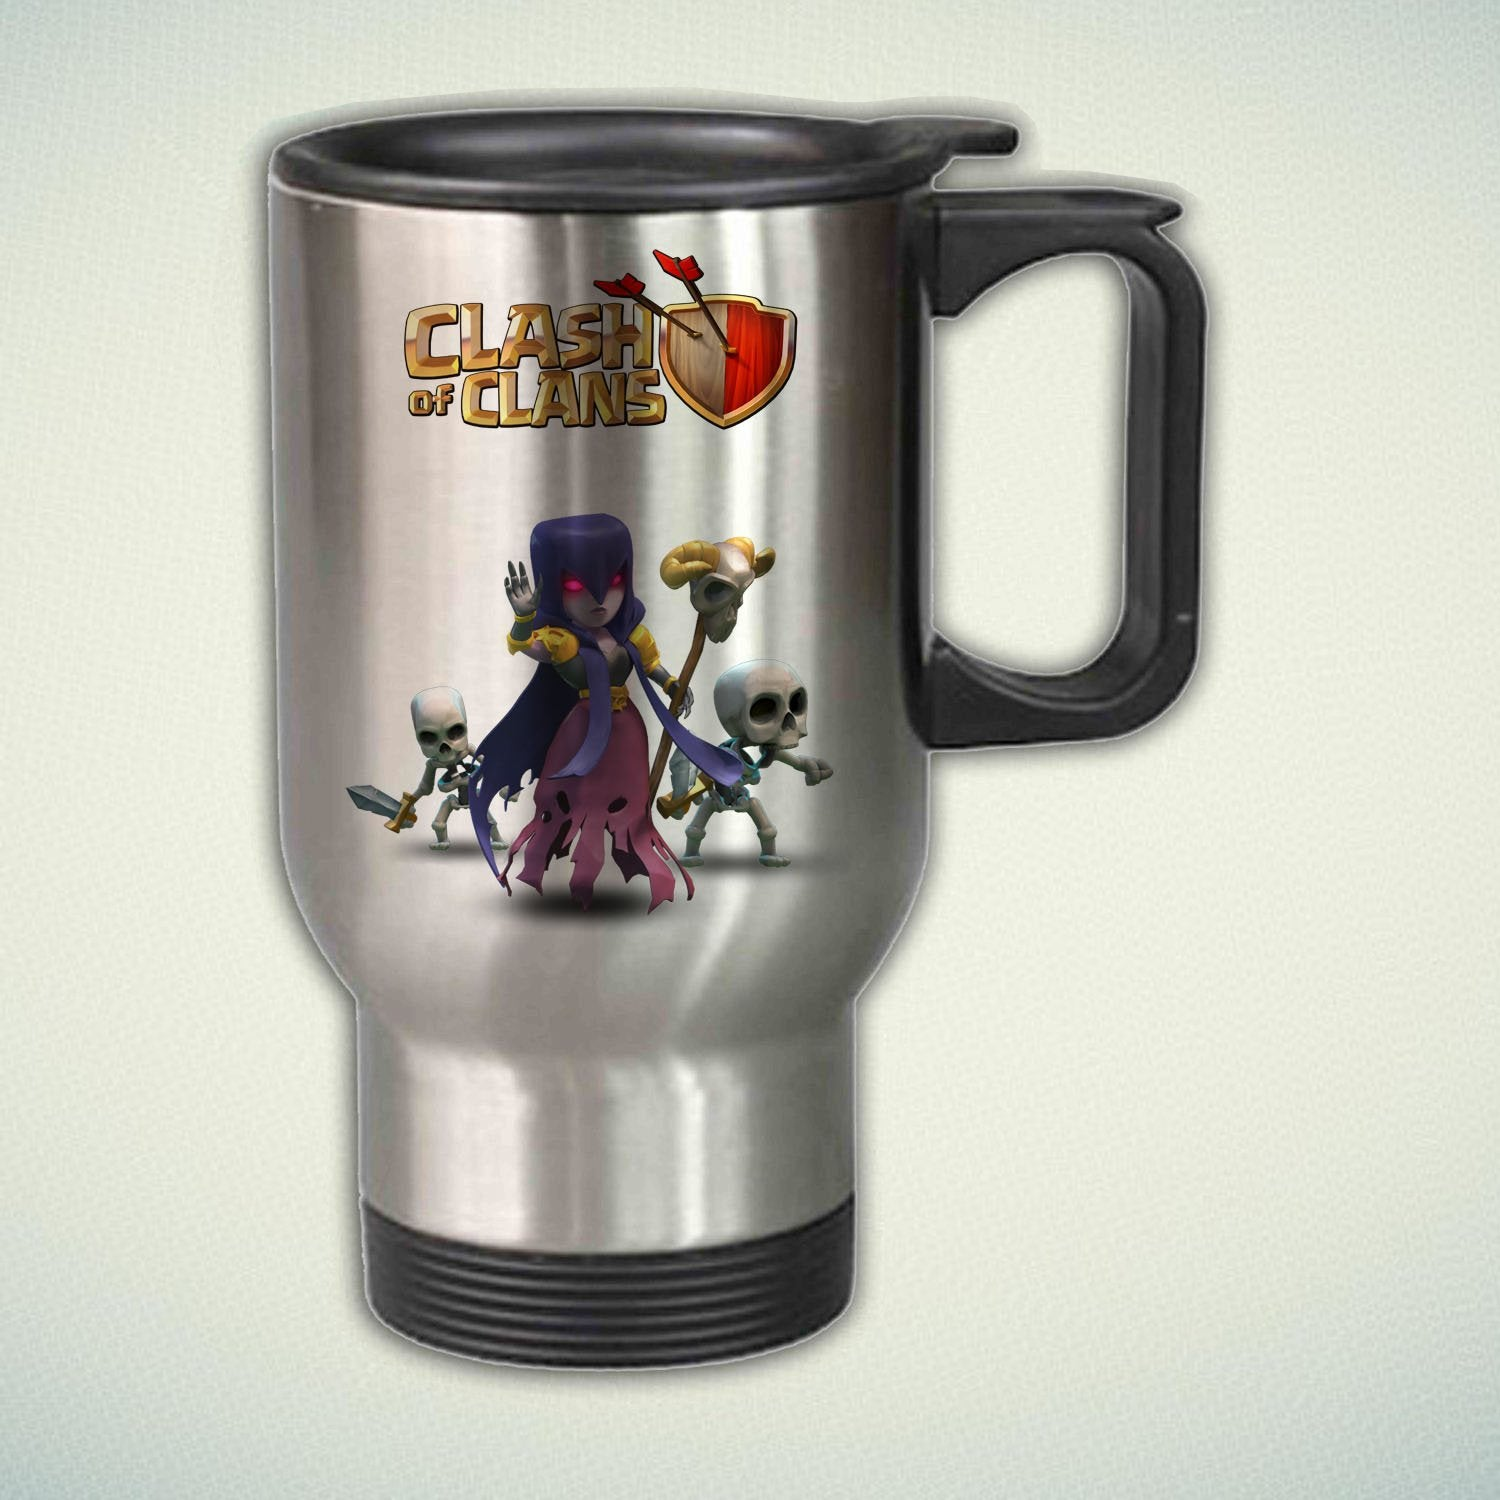 Clash of Clans Witch 14oz Stainless Steel Travel Mug